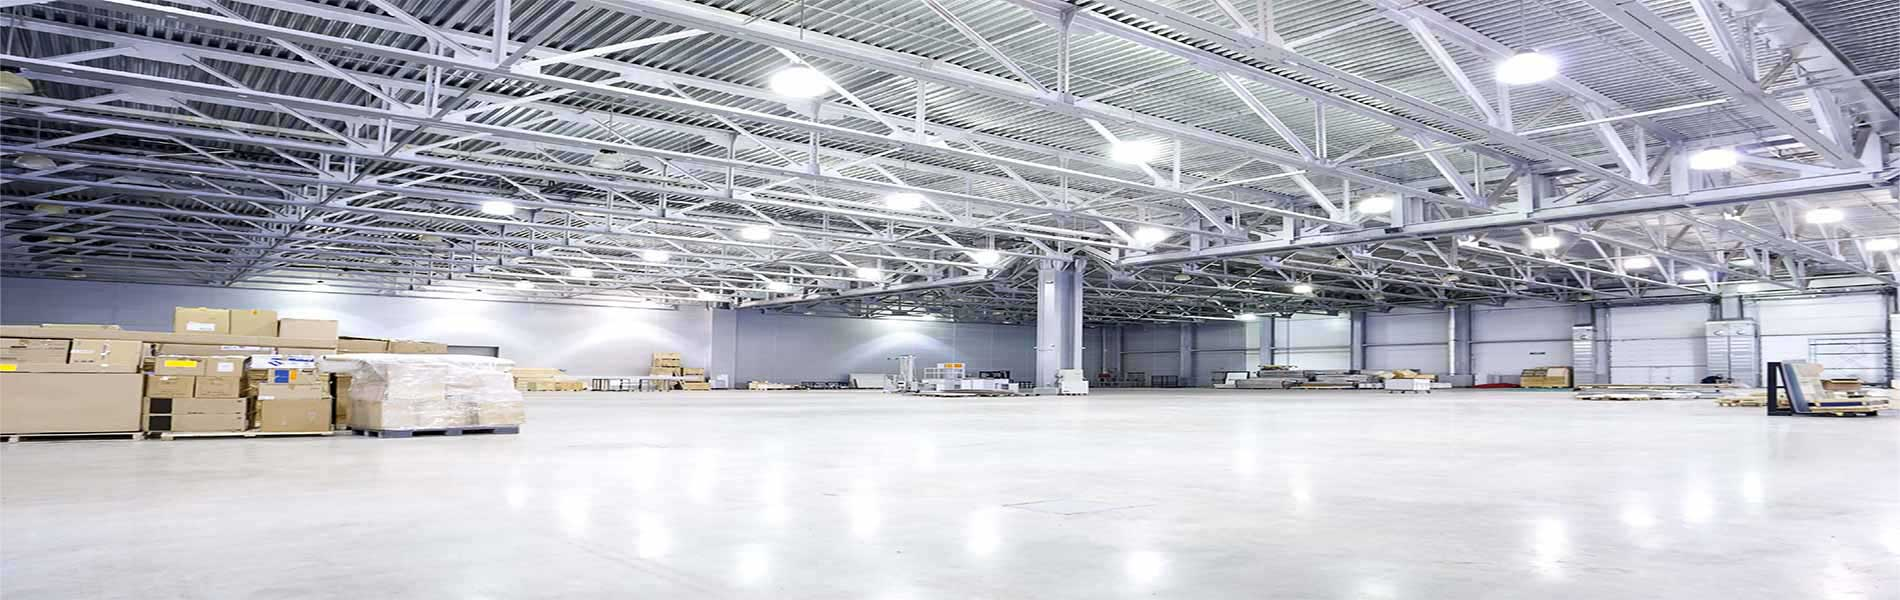 The Role of Warehousing in Today's Economy